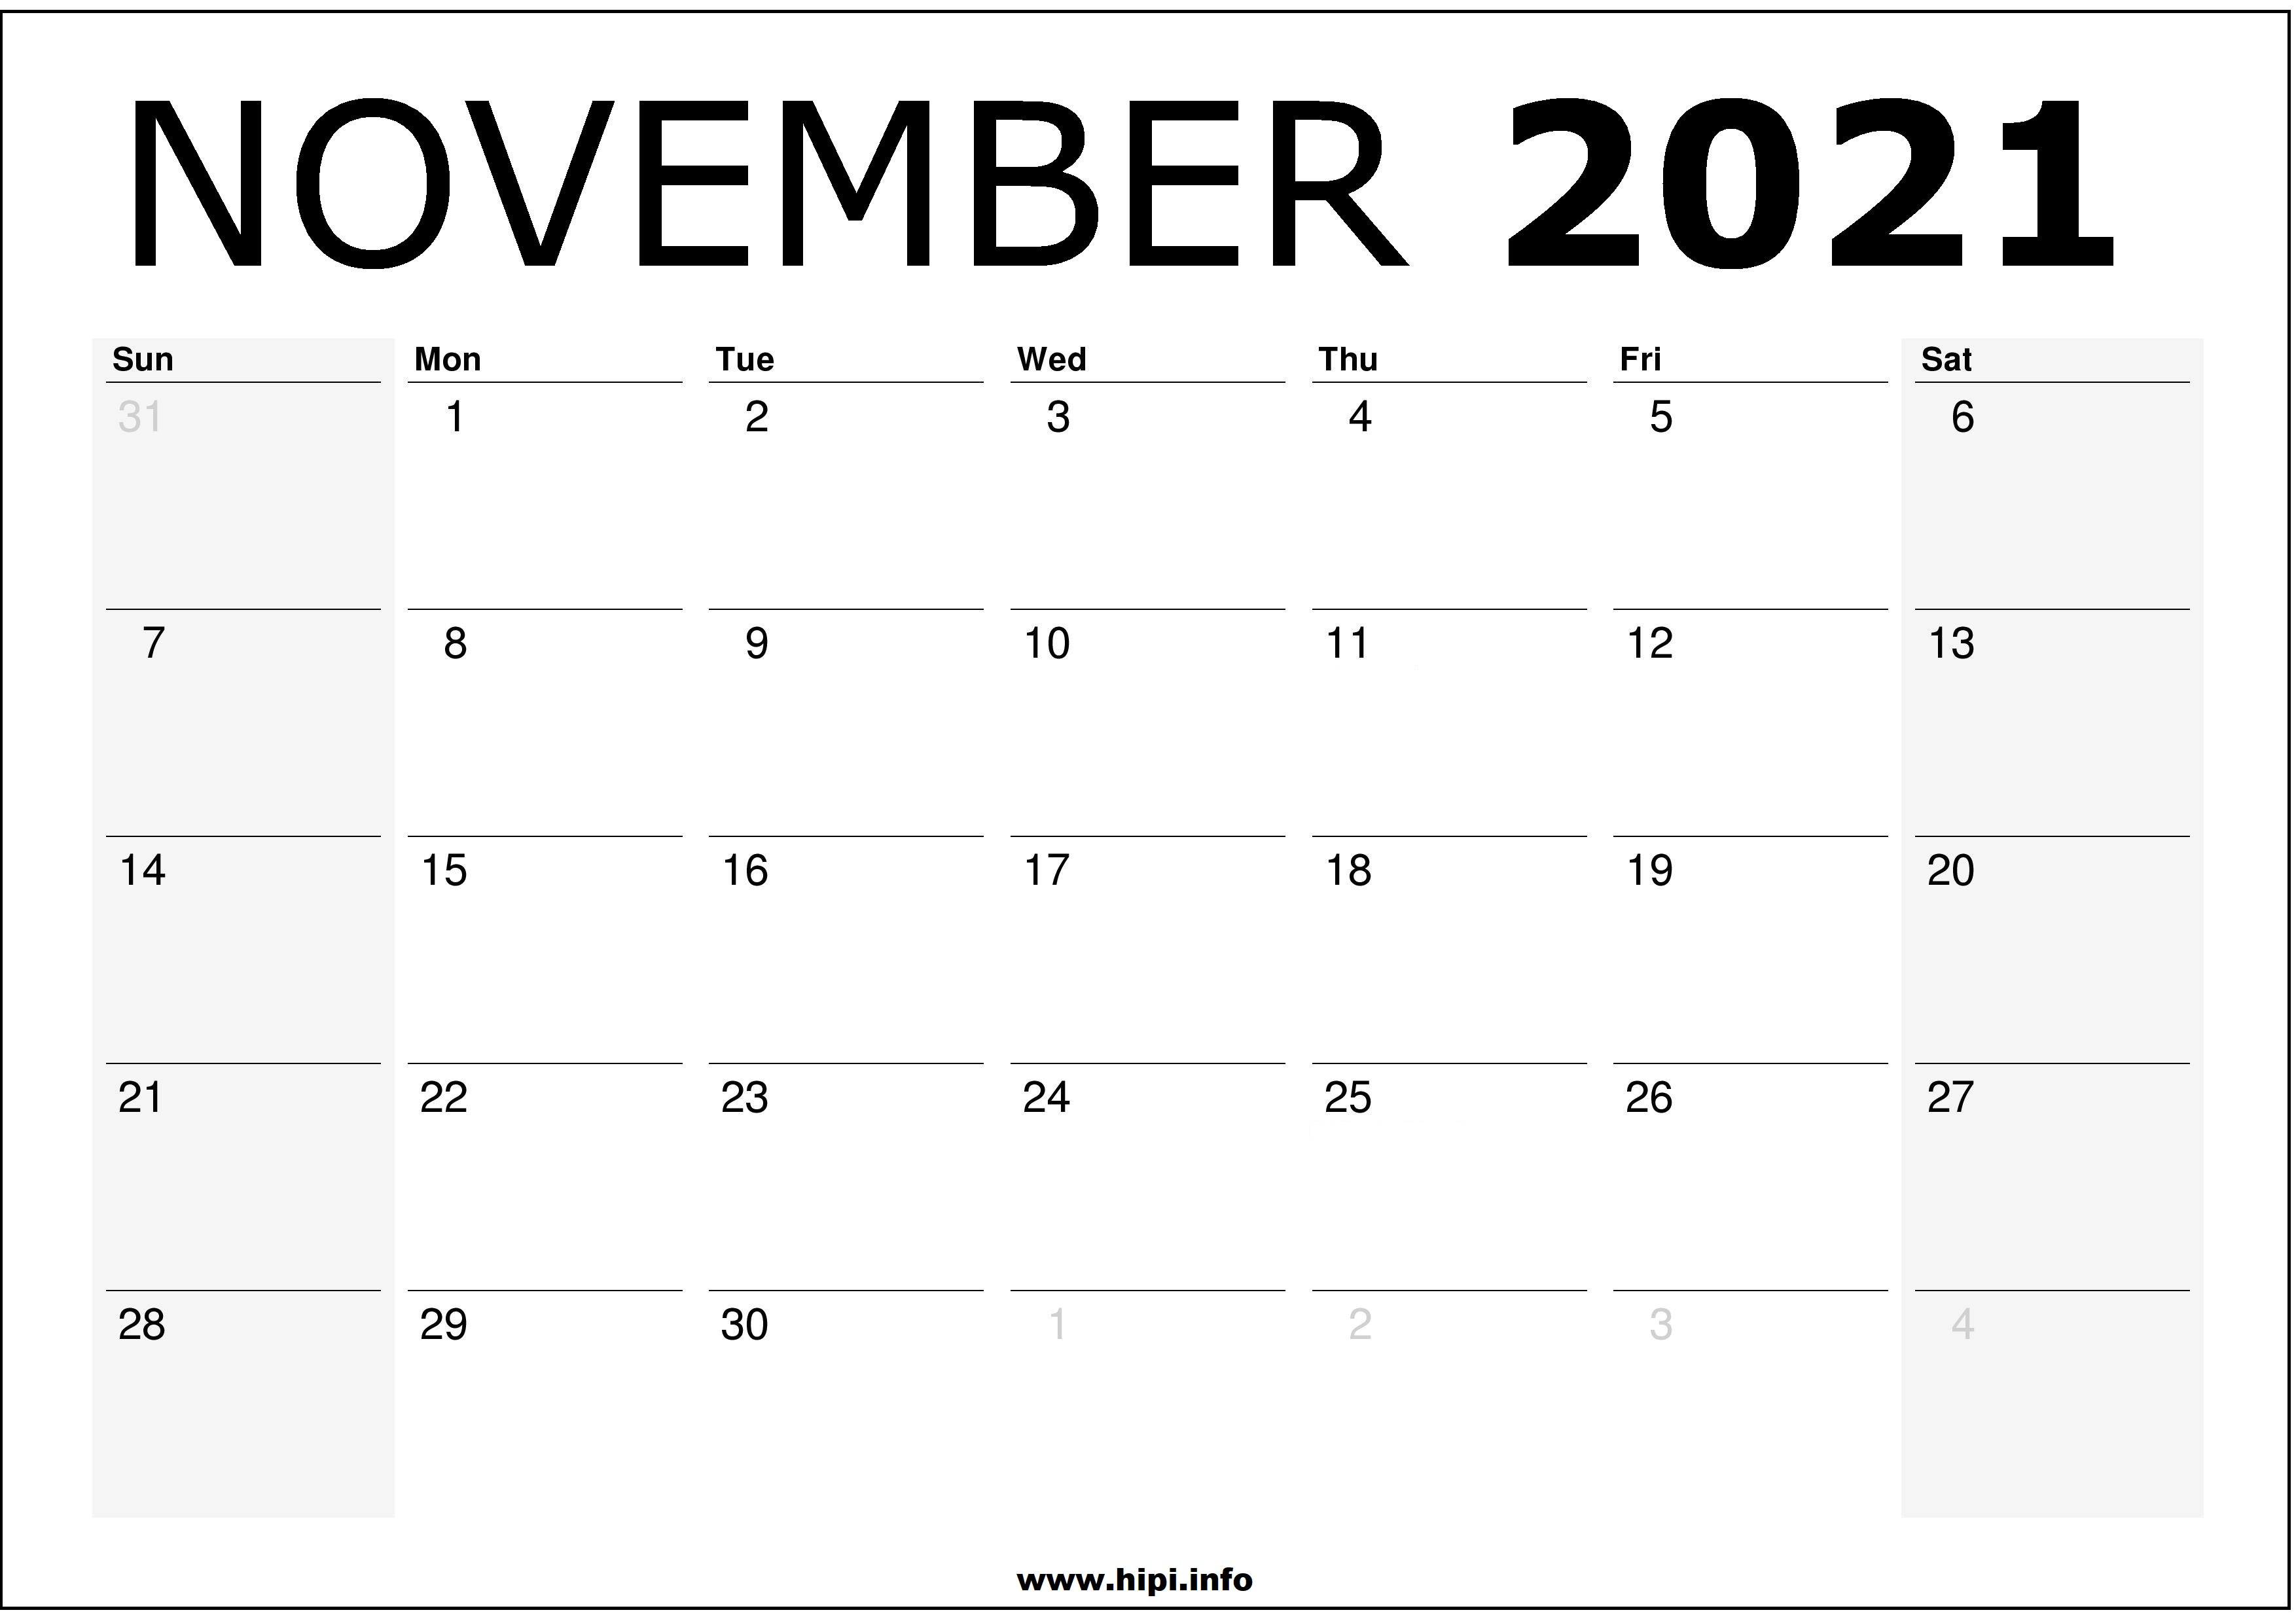 October 2021 Desktop Calendar November 2021 Calendar Printable – Monthly Calendar Free Download